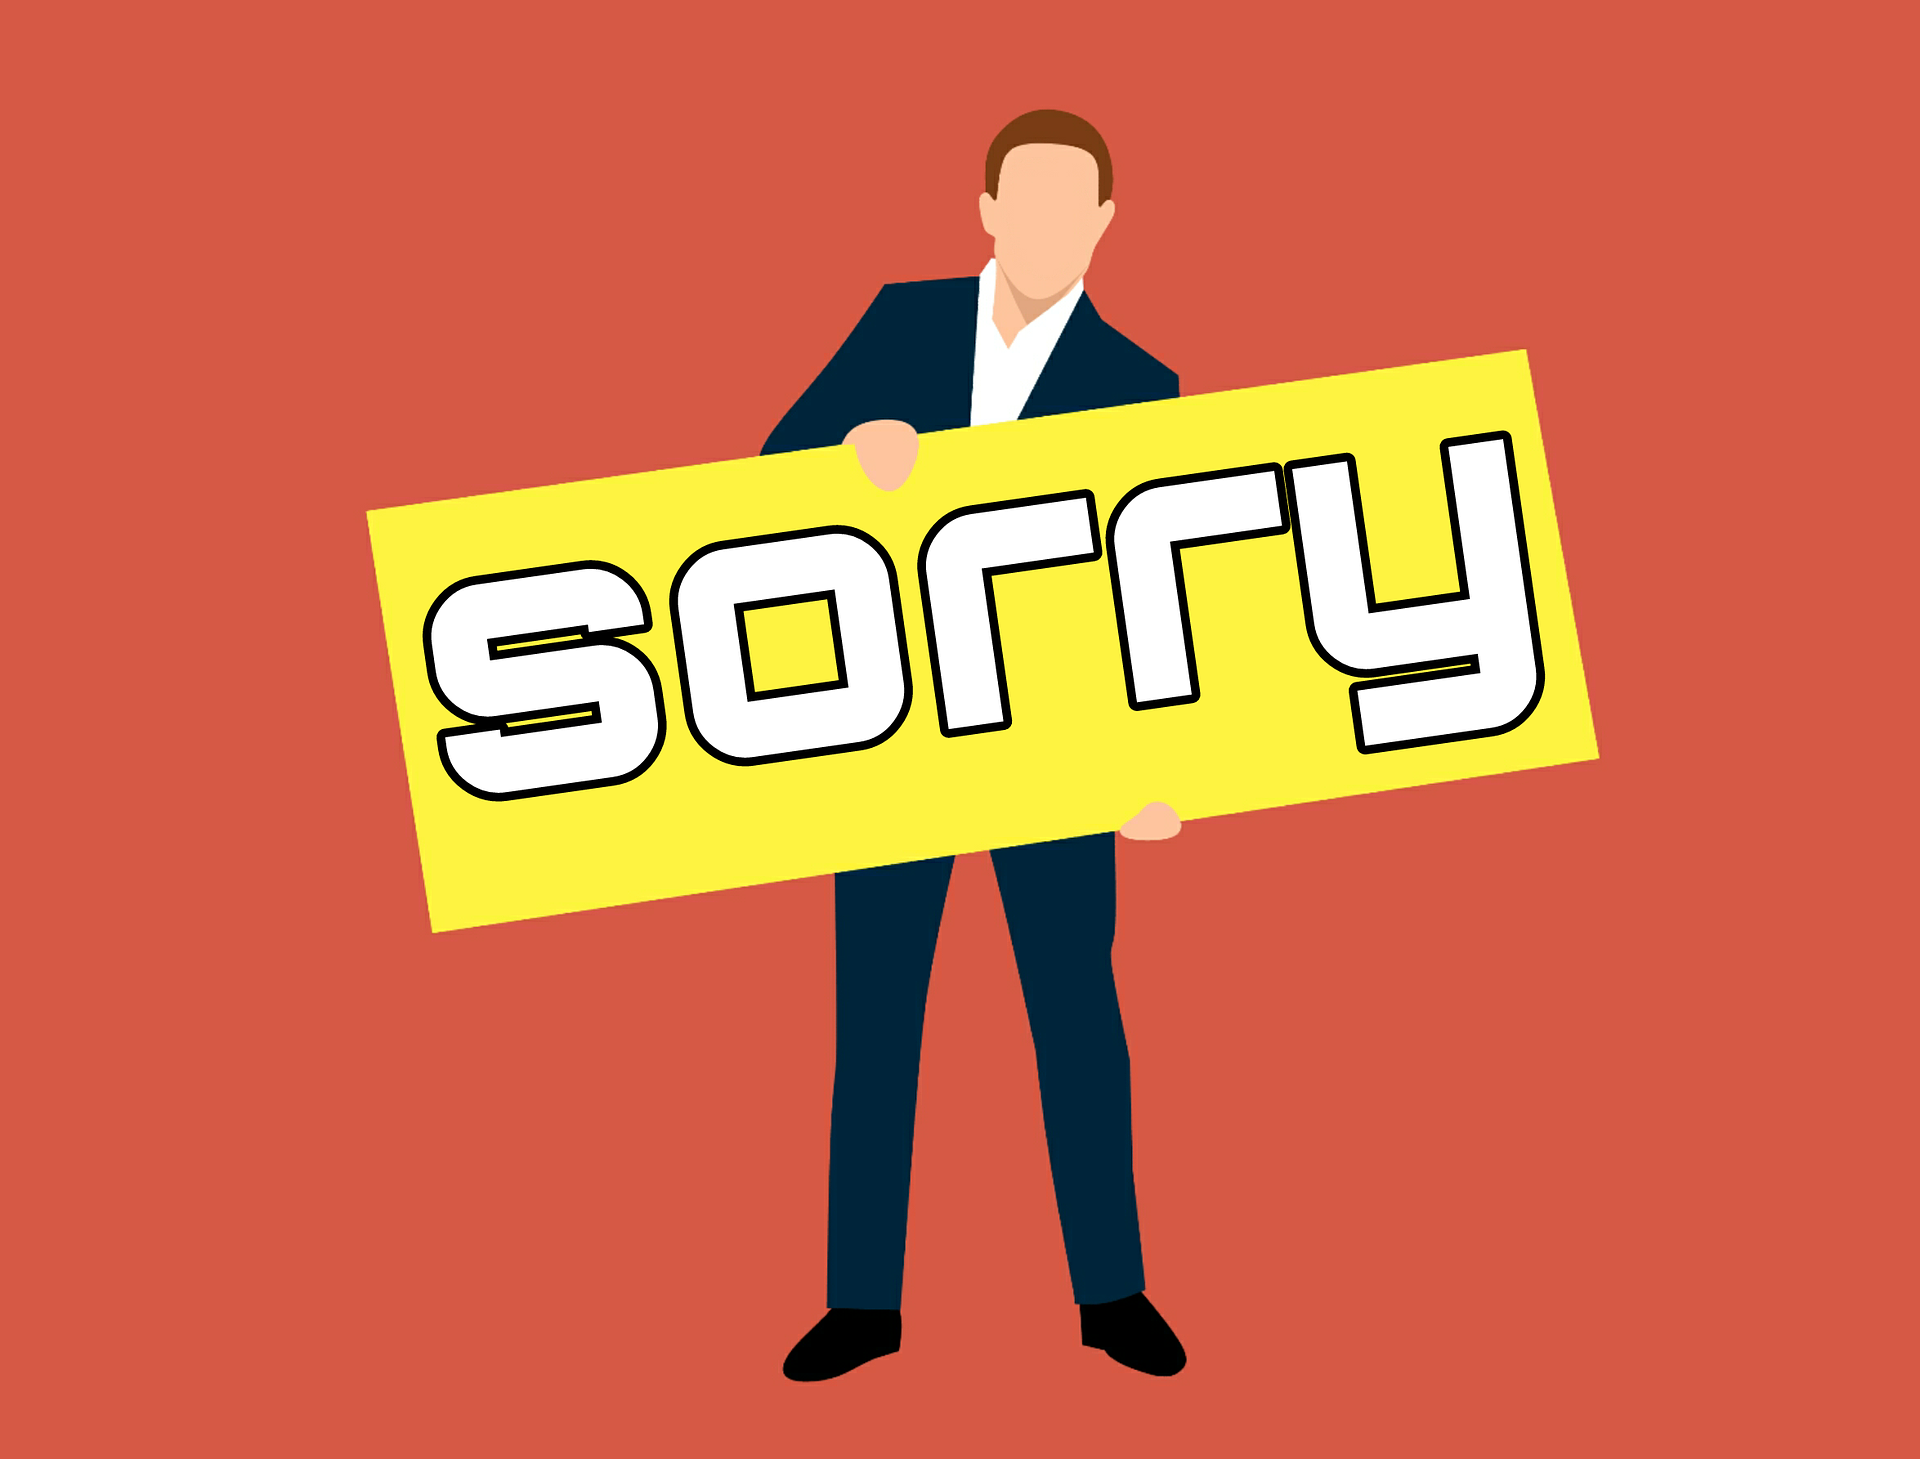 sorry-3160426_1920.png